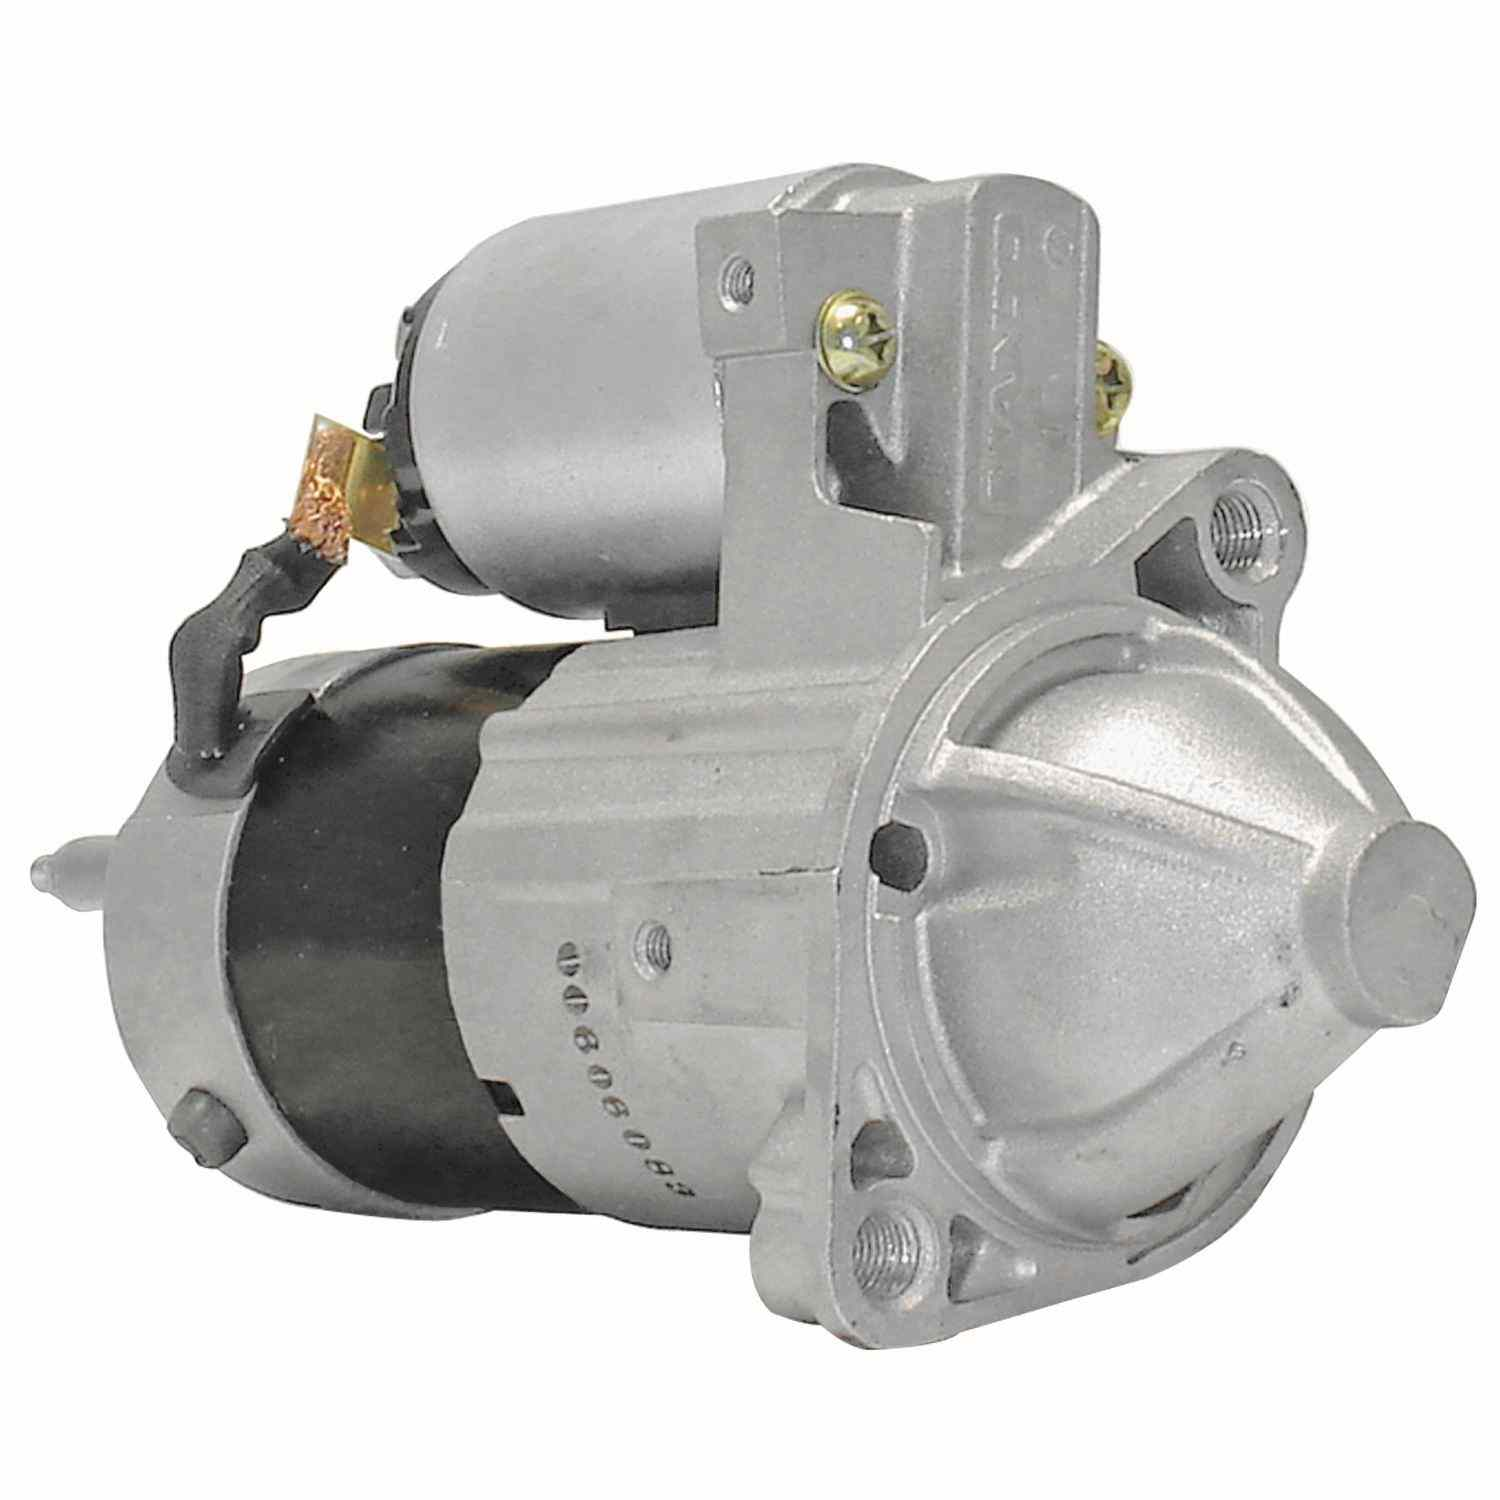 ACDELCO GOLD/PROFESSIONAL - Reman Starter Motor - DCC 336-1702